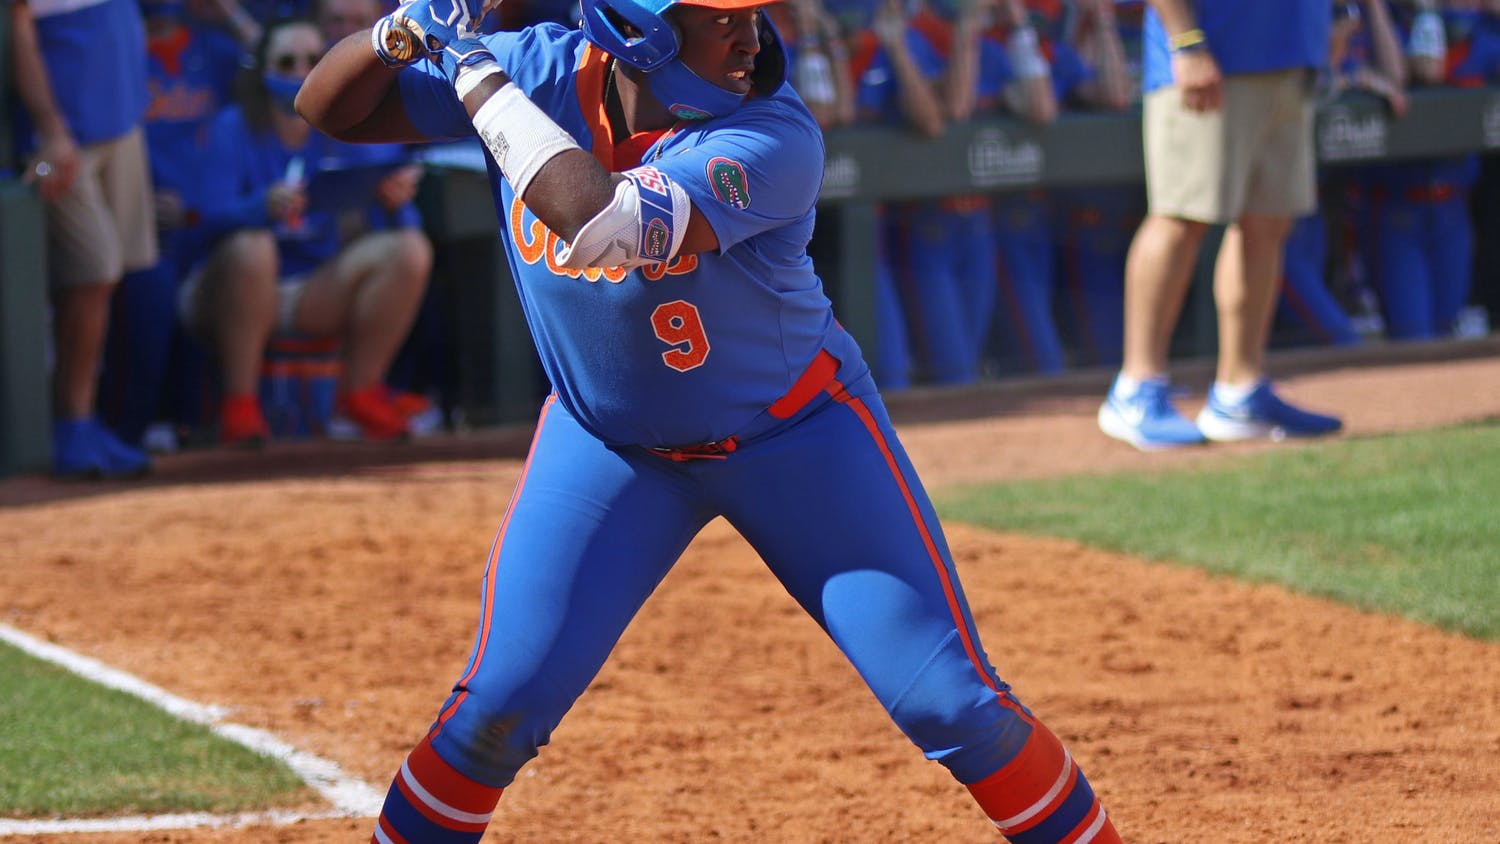 Florida's Jaimie Hoover stands in the batter's box against Louisville February 27. Hoover drove home the winning run over Missouri Friday to advance the Gators to the SEC Tournament final.